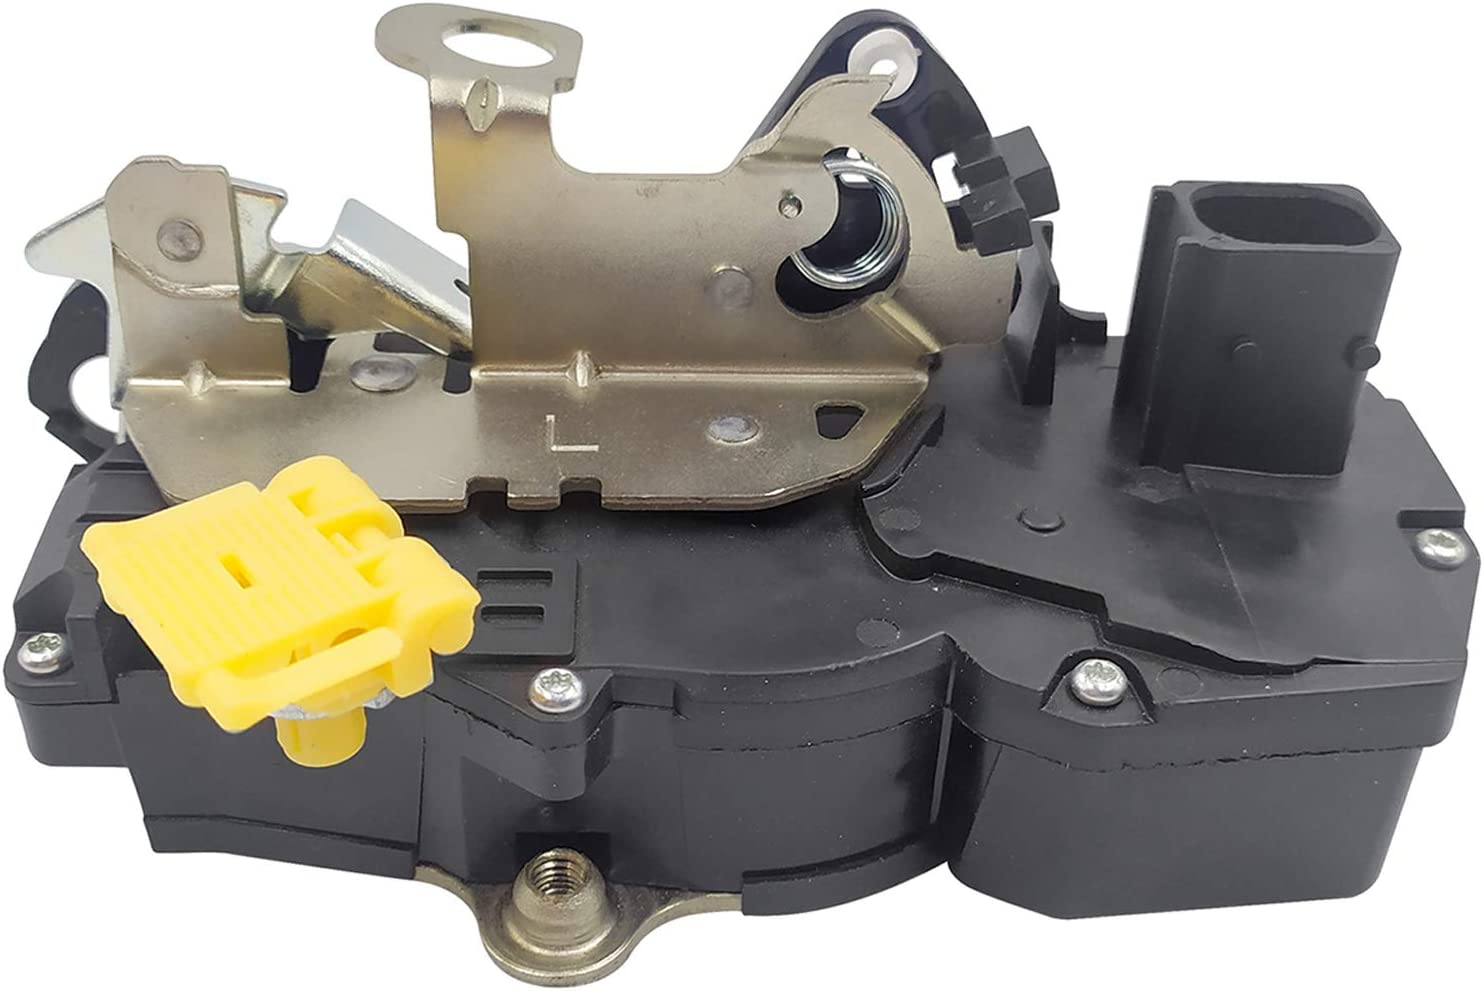 LONGKEES Rear Left NEW before selling ☆ Door Lock Actuator security 2005-2006 Allure For Buick